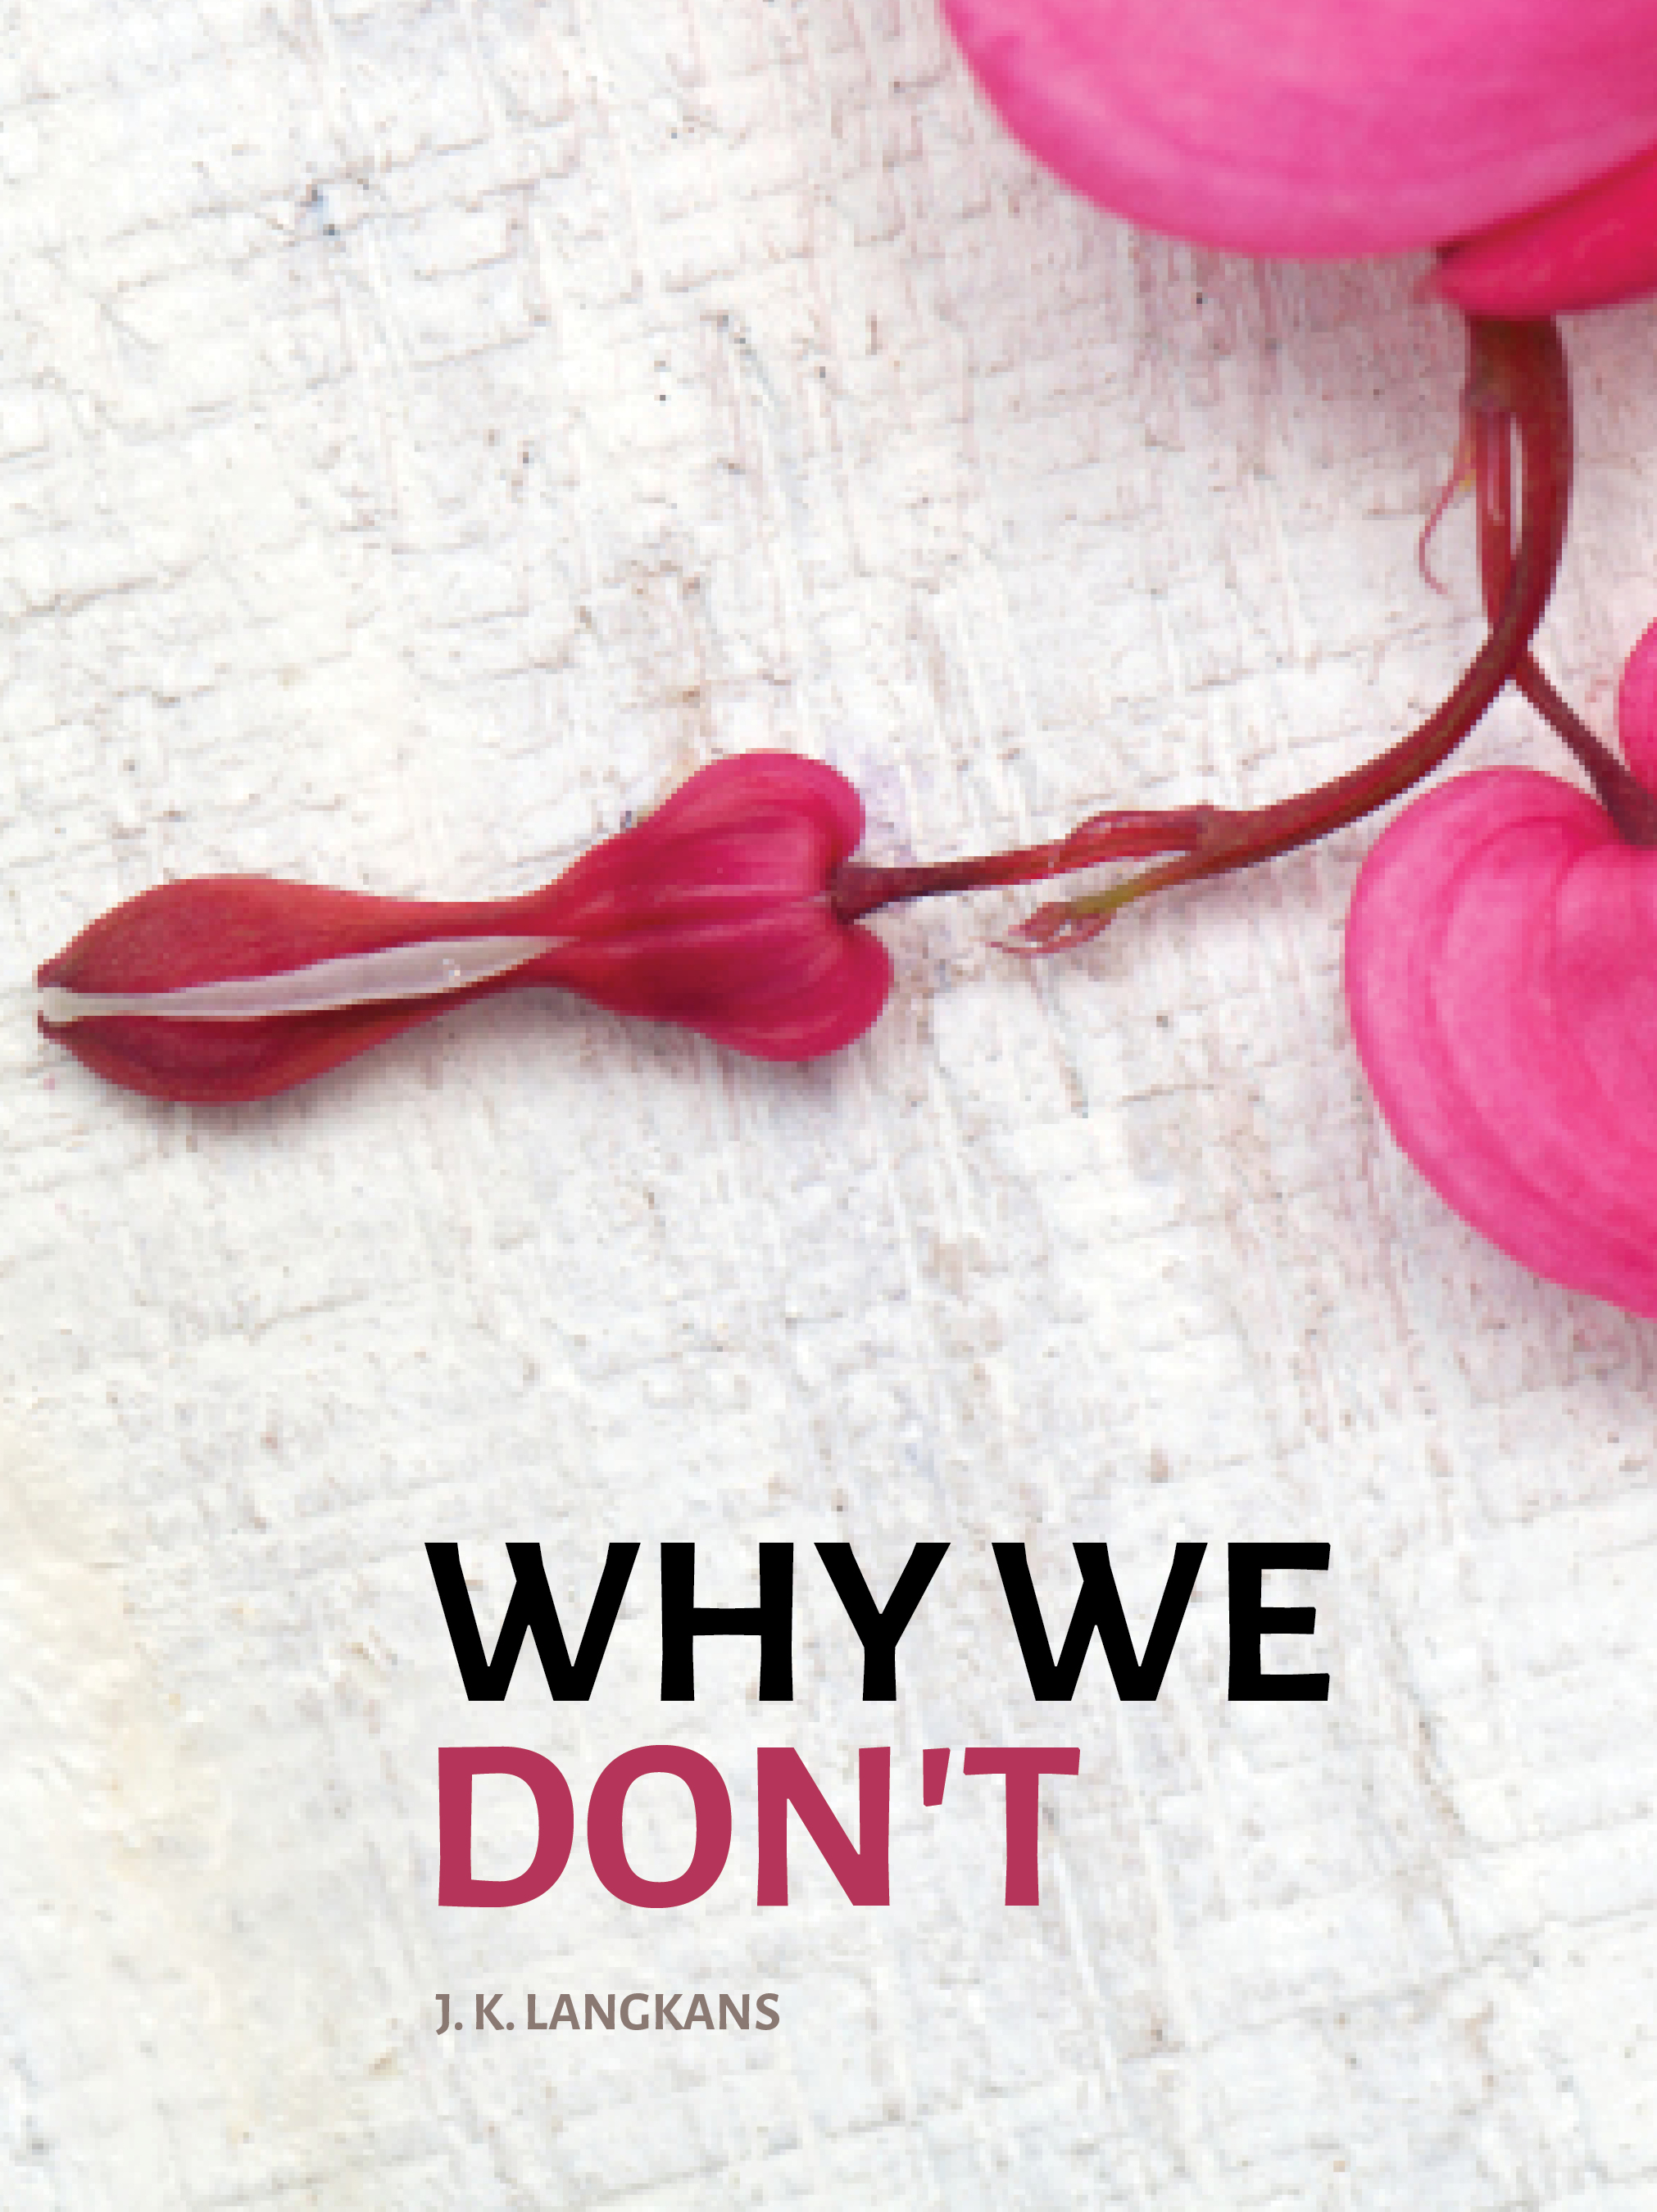 why we don't book cover